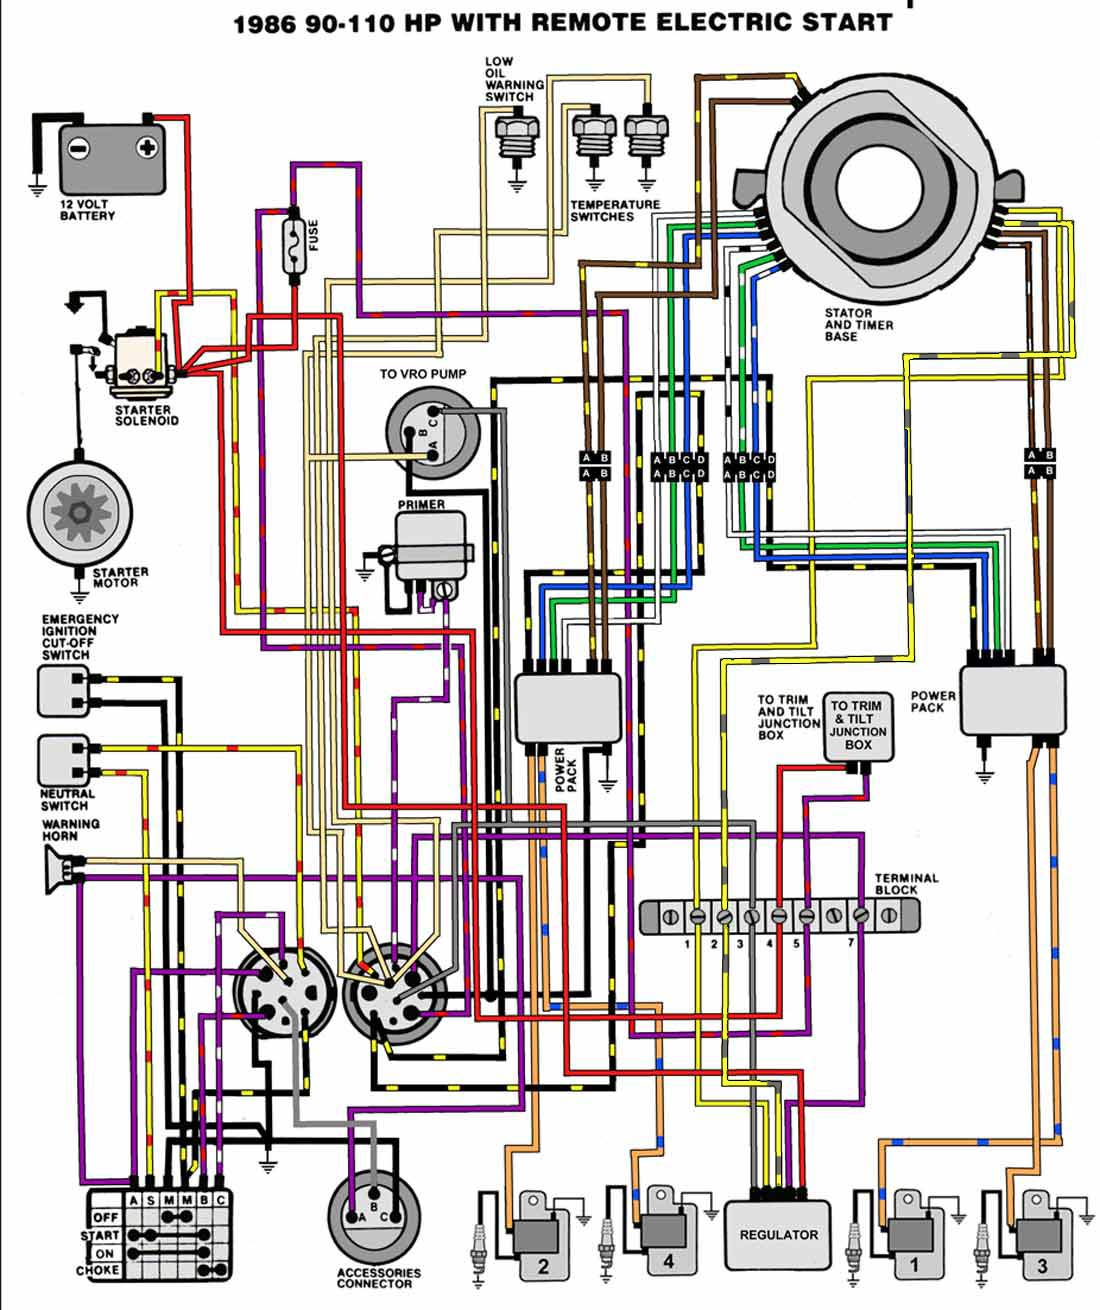 DIAGRAM] 86 Mercury 115 Hp Wiring Diagram FULL Version HD Quality Wiring  Diagram - CONTACTOVISUAL7.SCHRAFFL-BELMONTE.ITSchraffl-belmonte.it